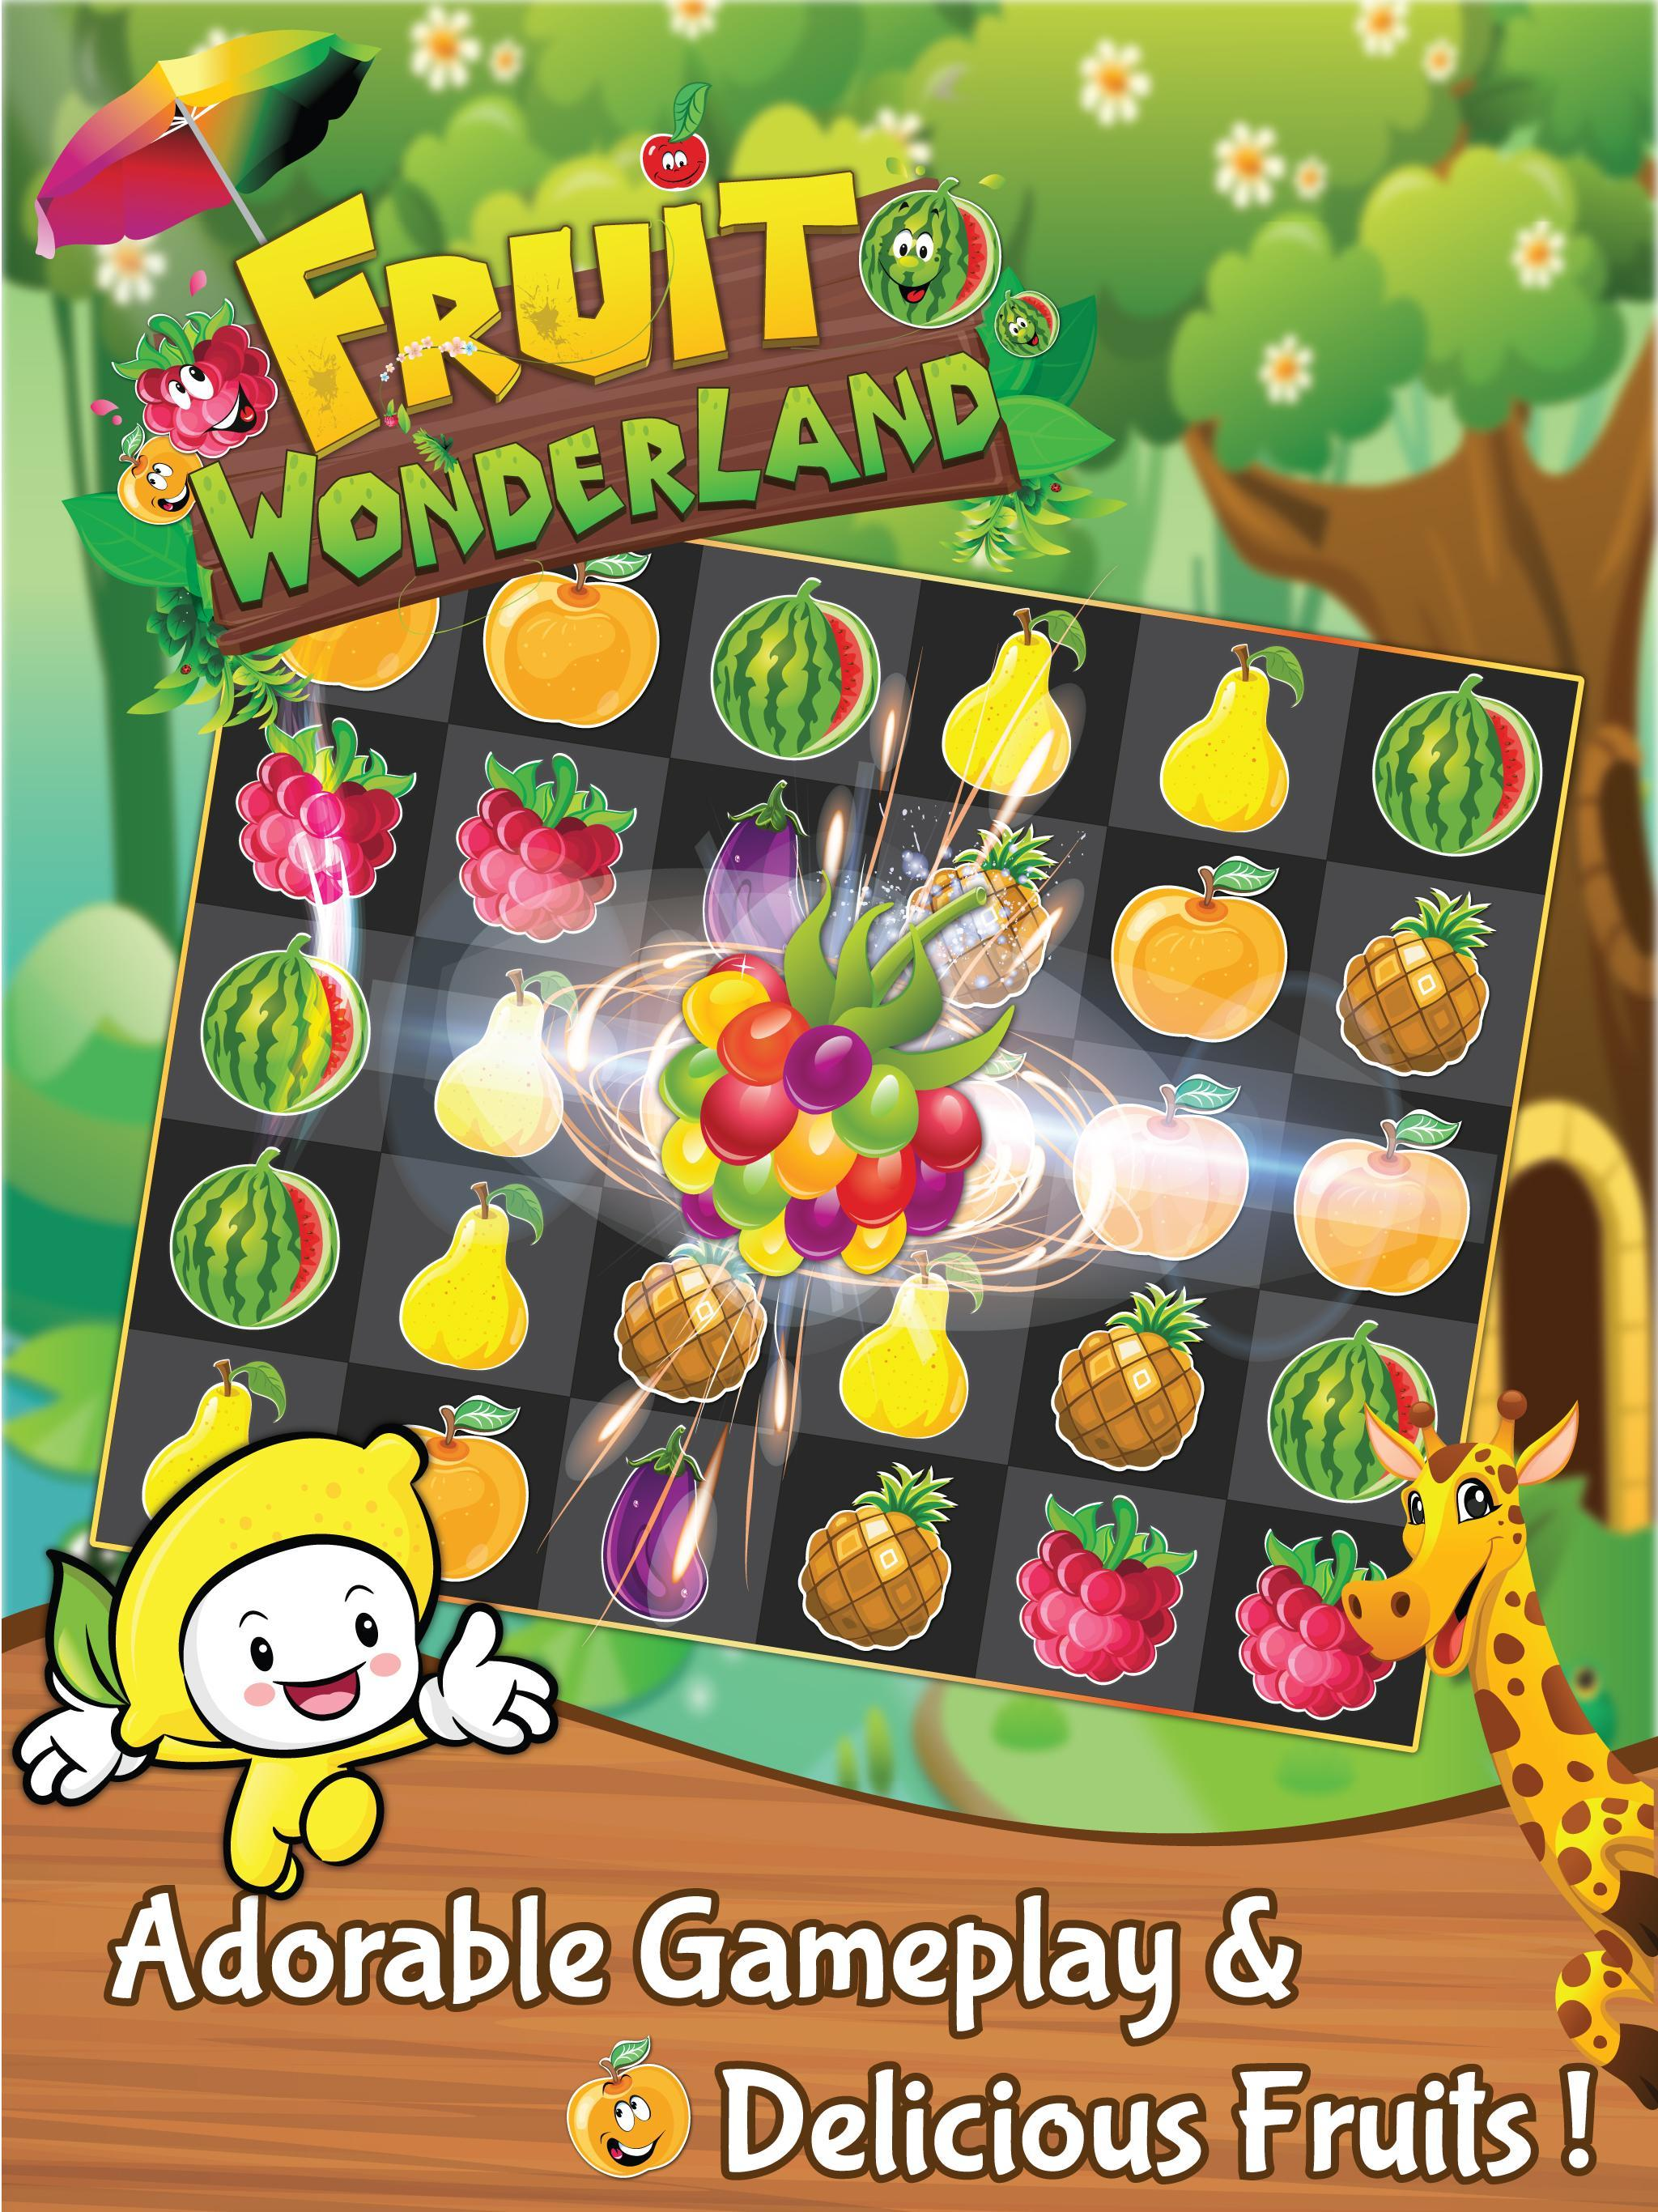 Match 3 Fruit Wonderland Puzzle - Jungle Adventure 1.101 Screenshot 4